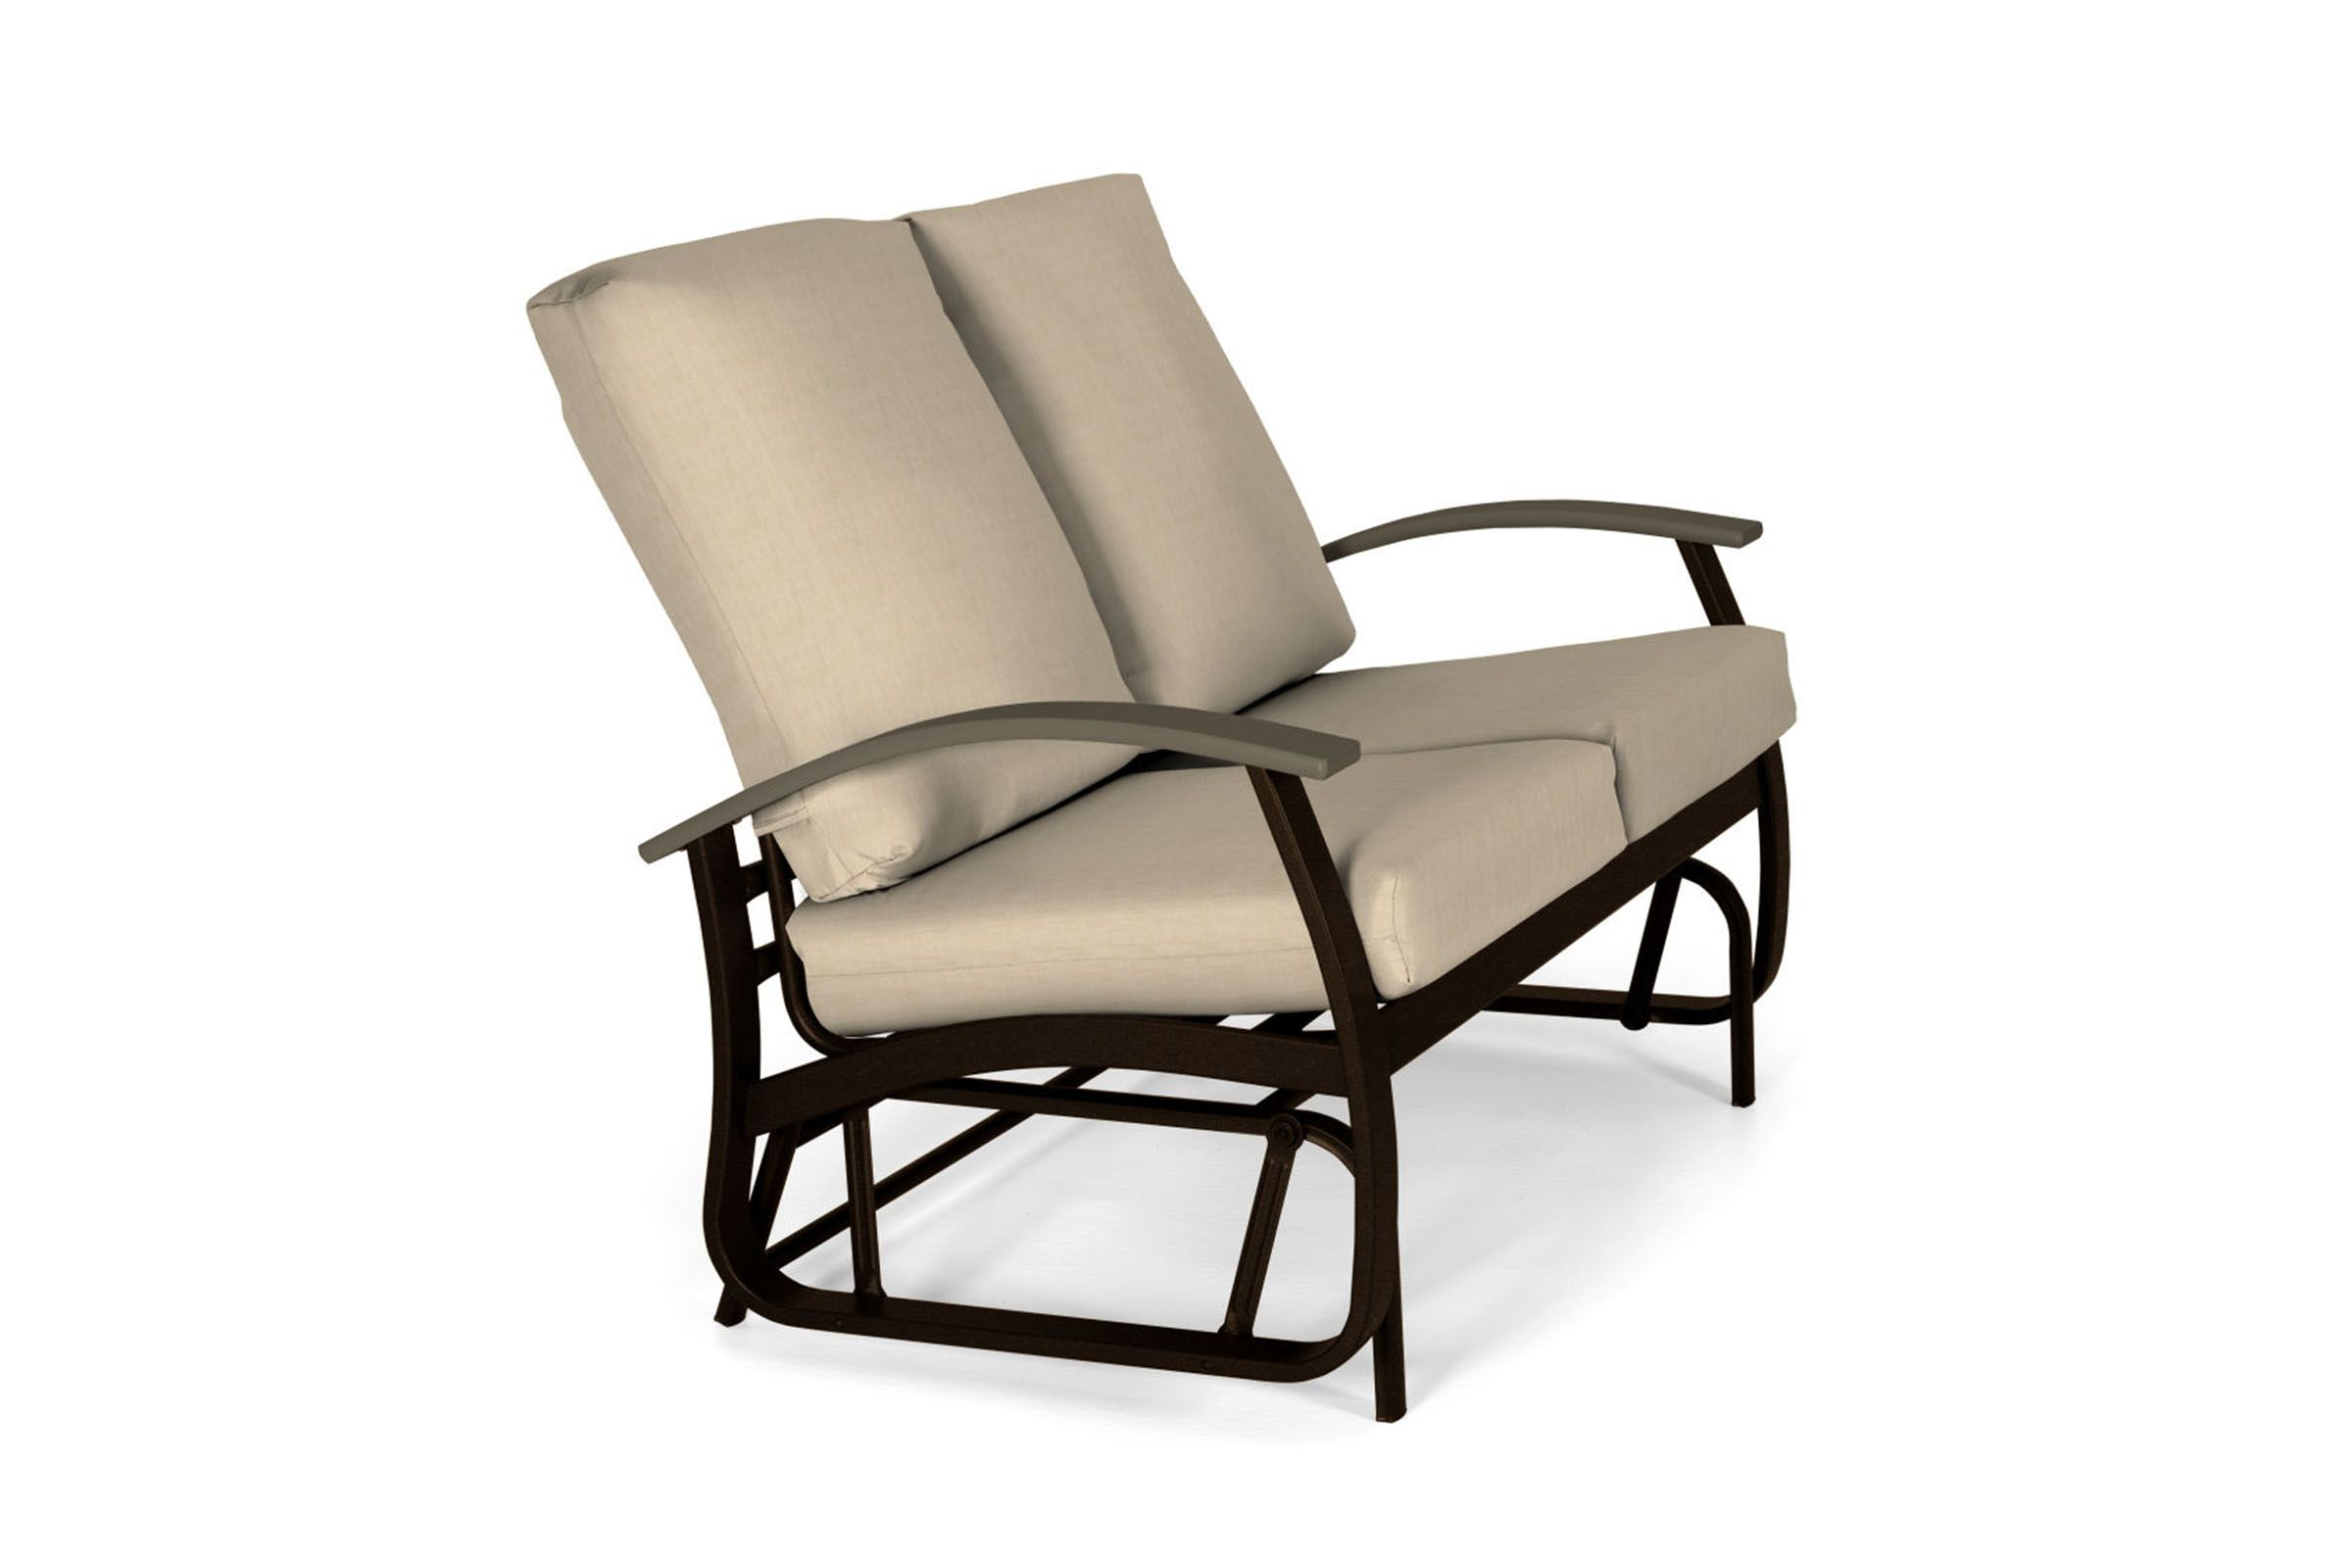 Best And Newest Outdoor Loveseat Gliders With Cushion Regarding Belle Isle Cushion Loveseat Glider (View 22 of 25)